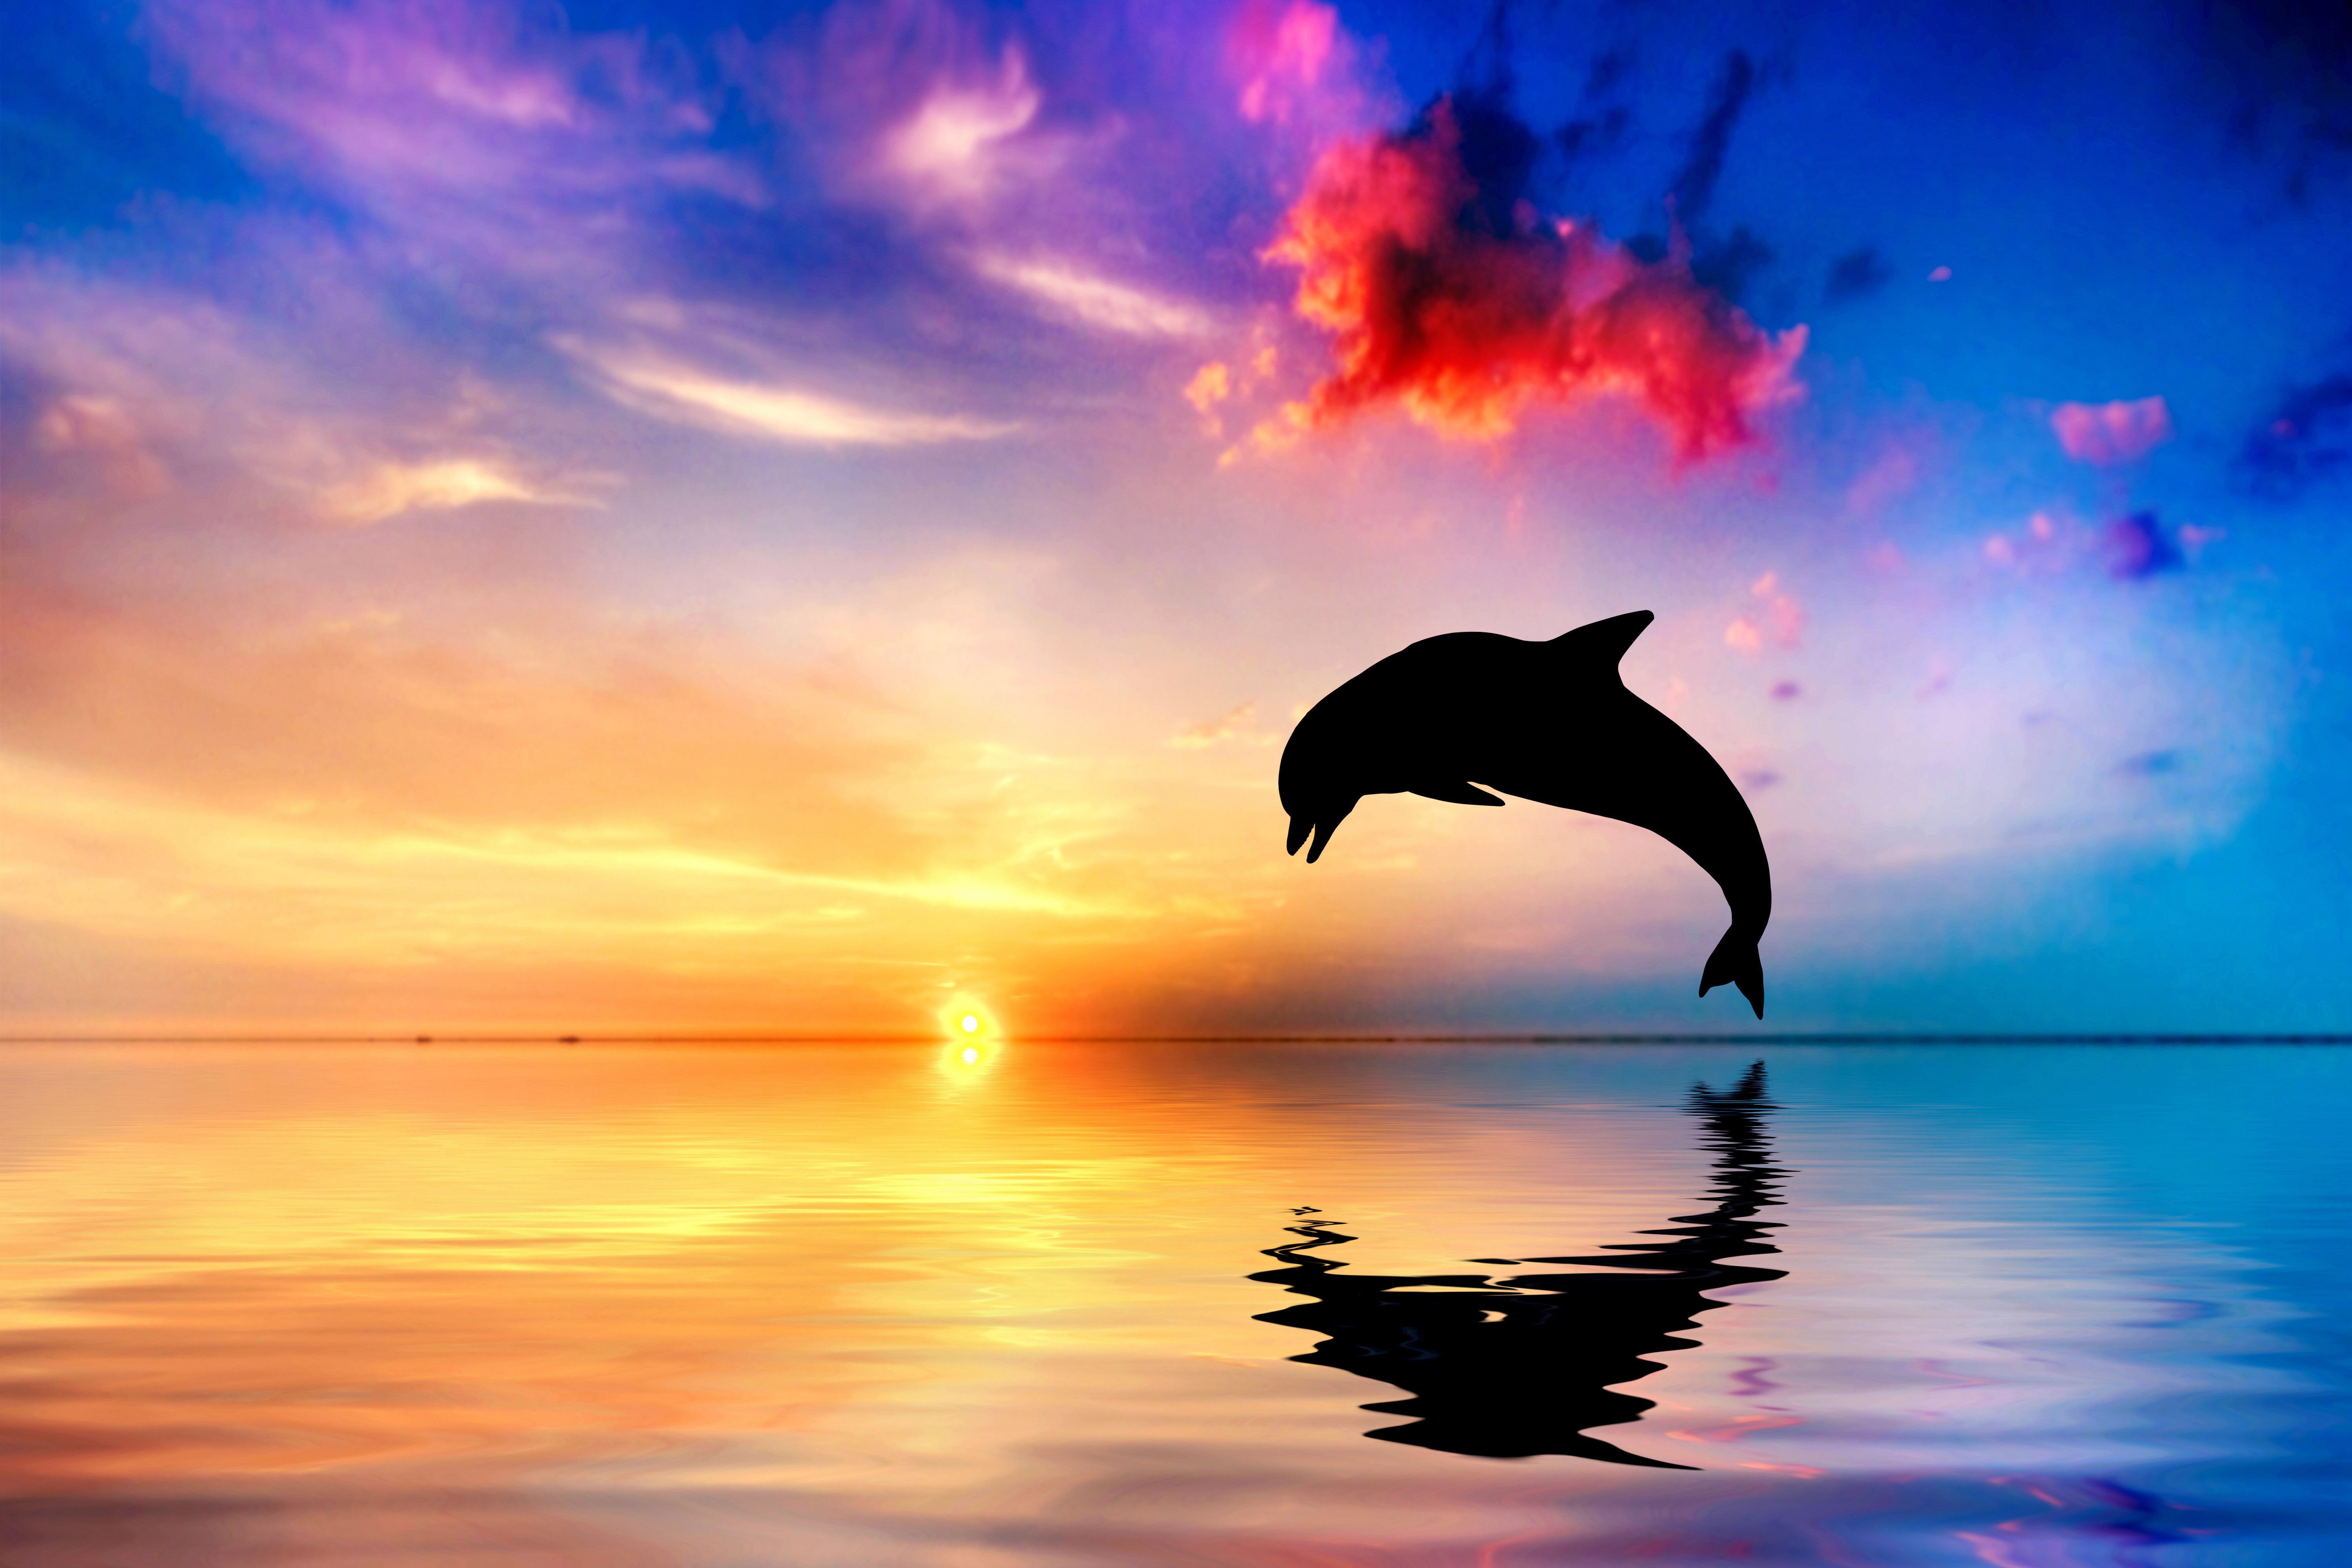 2048x2048 Serene Sunset Ipad Air Hd 4k Wallpapers Images: 2048x2048 Dolphin Jumping Out Of Water Sunset View 4k Ipad